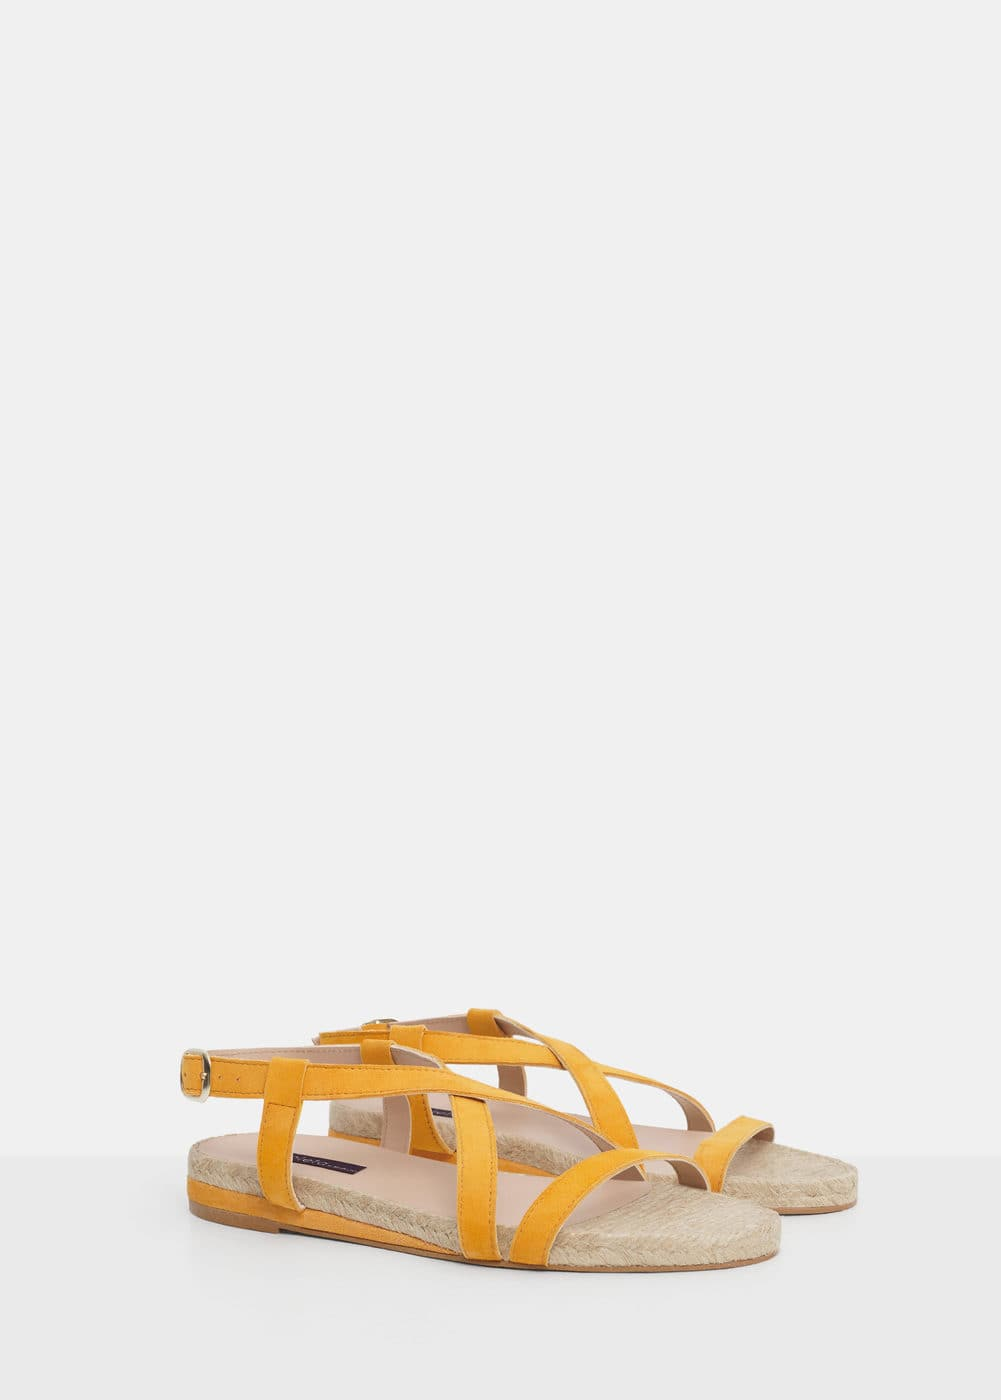 Leather strap sandals | VIOLETA BY MANGO